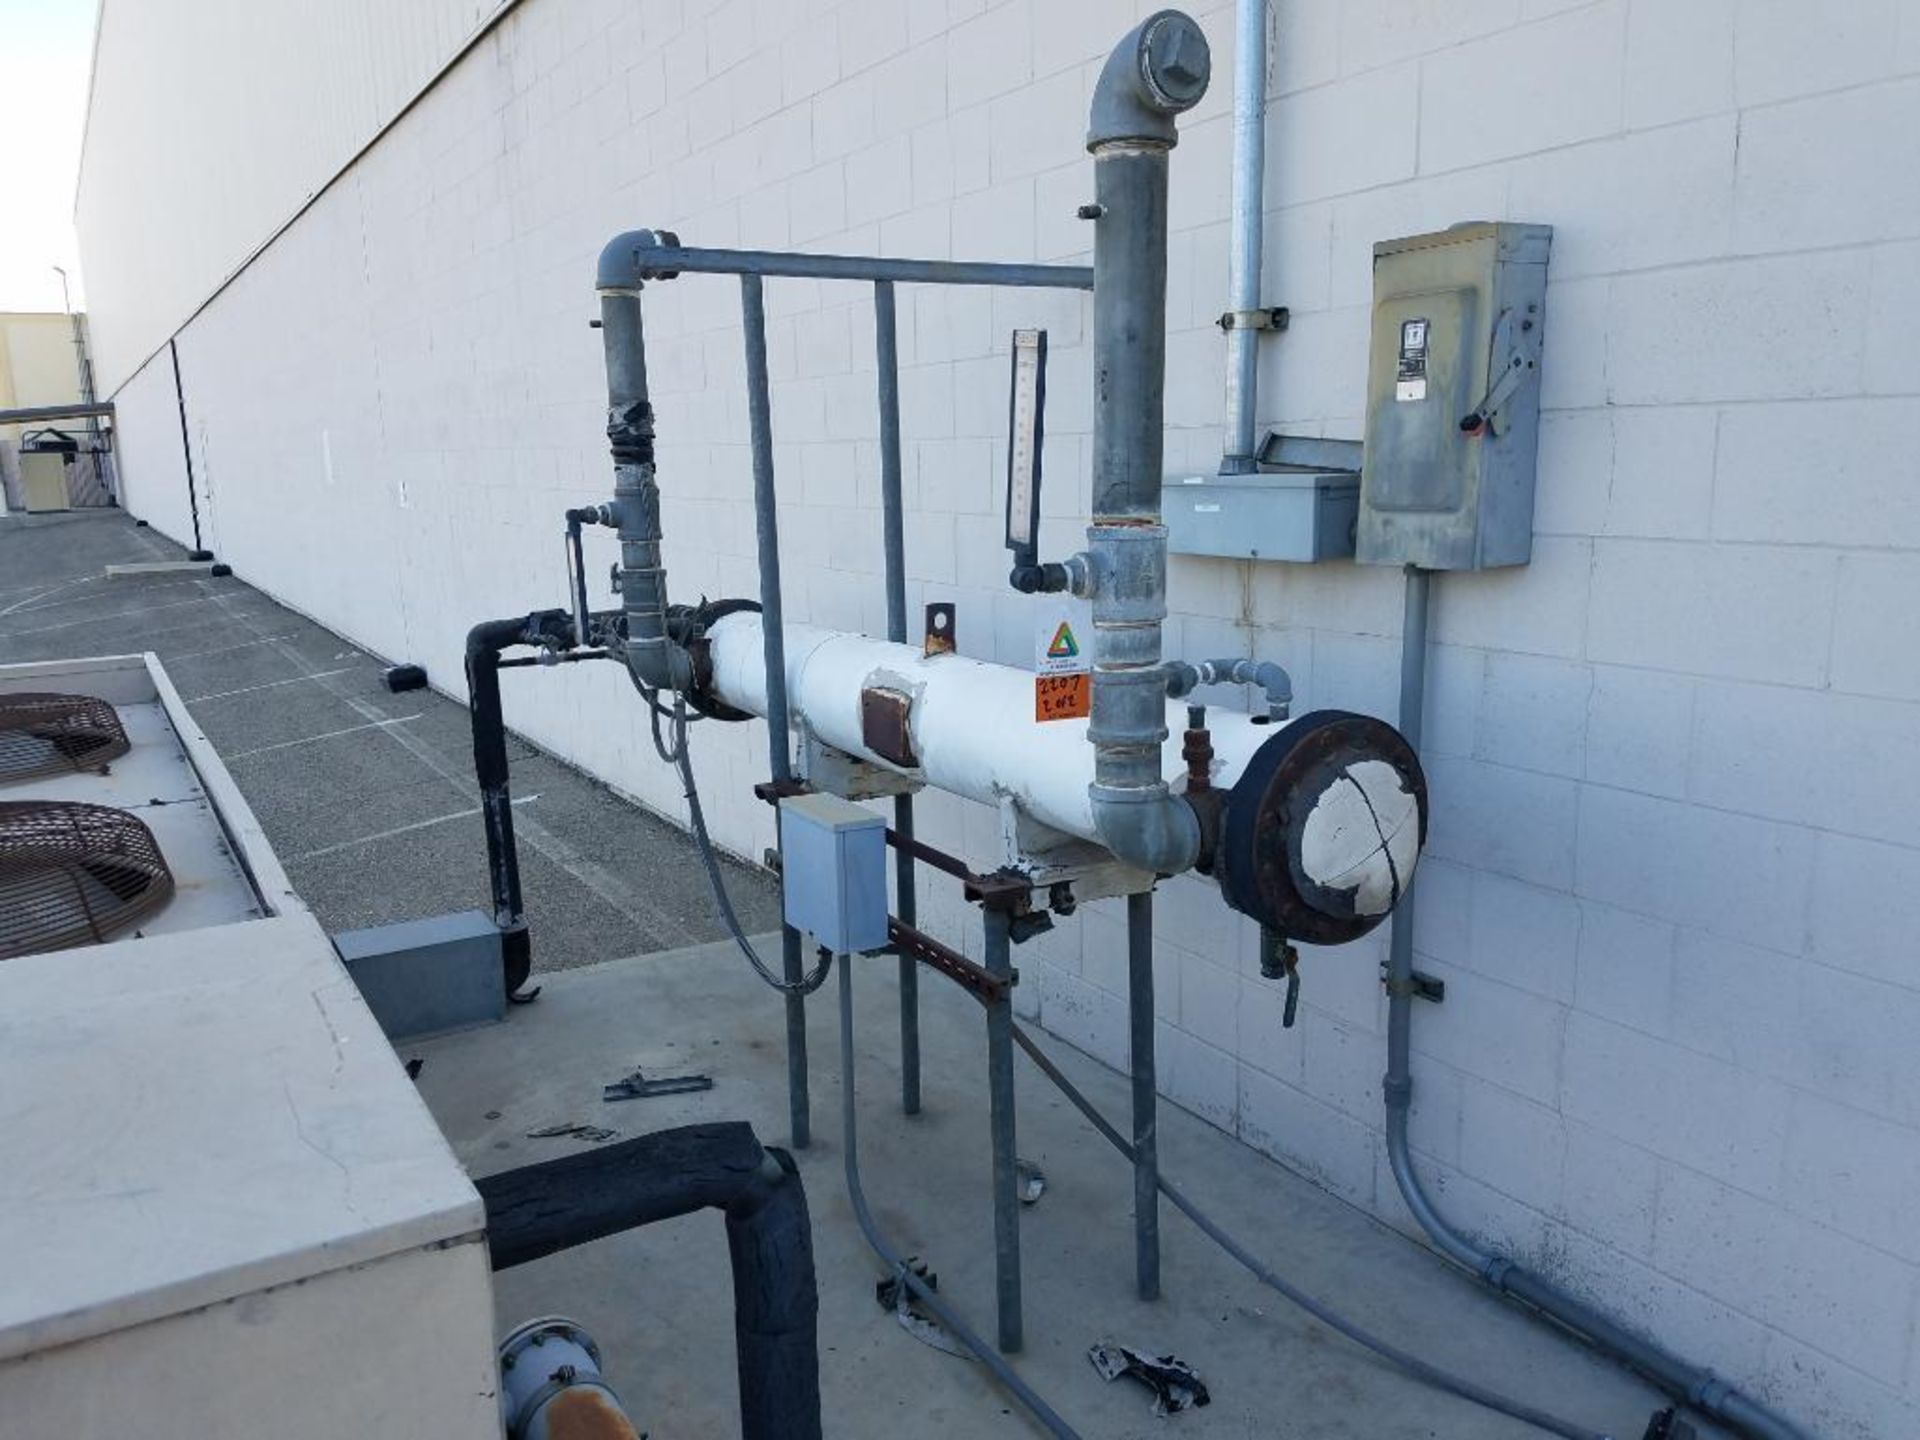 York water chiller - Image 5 of 8